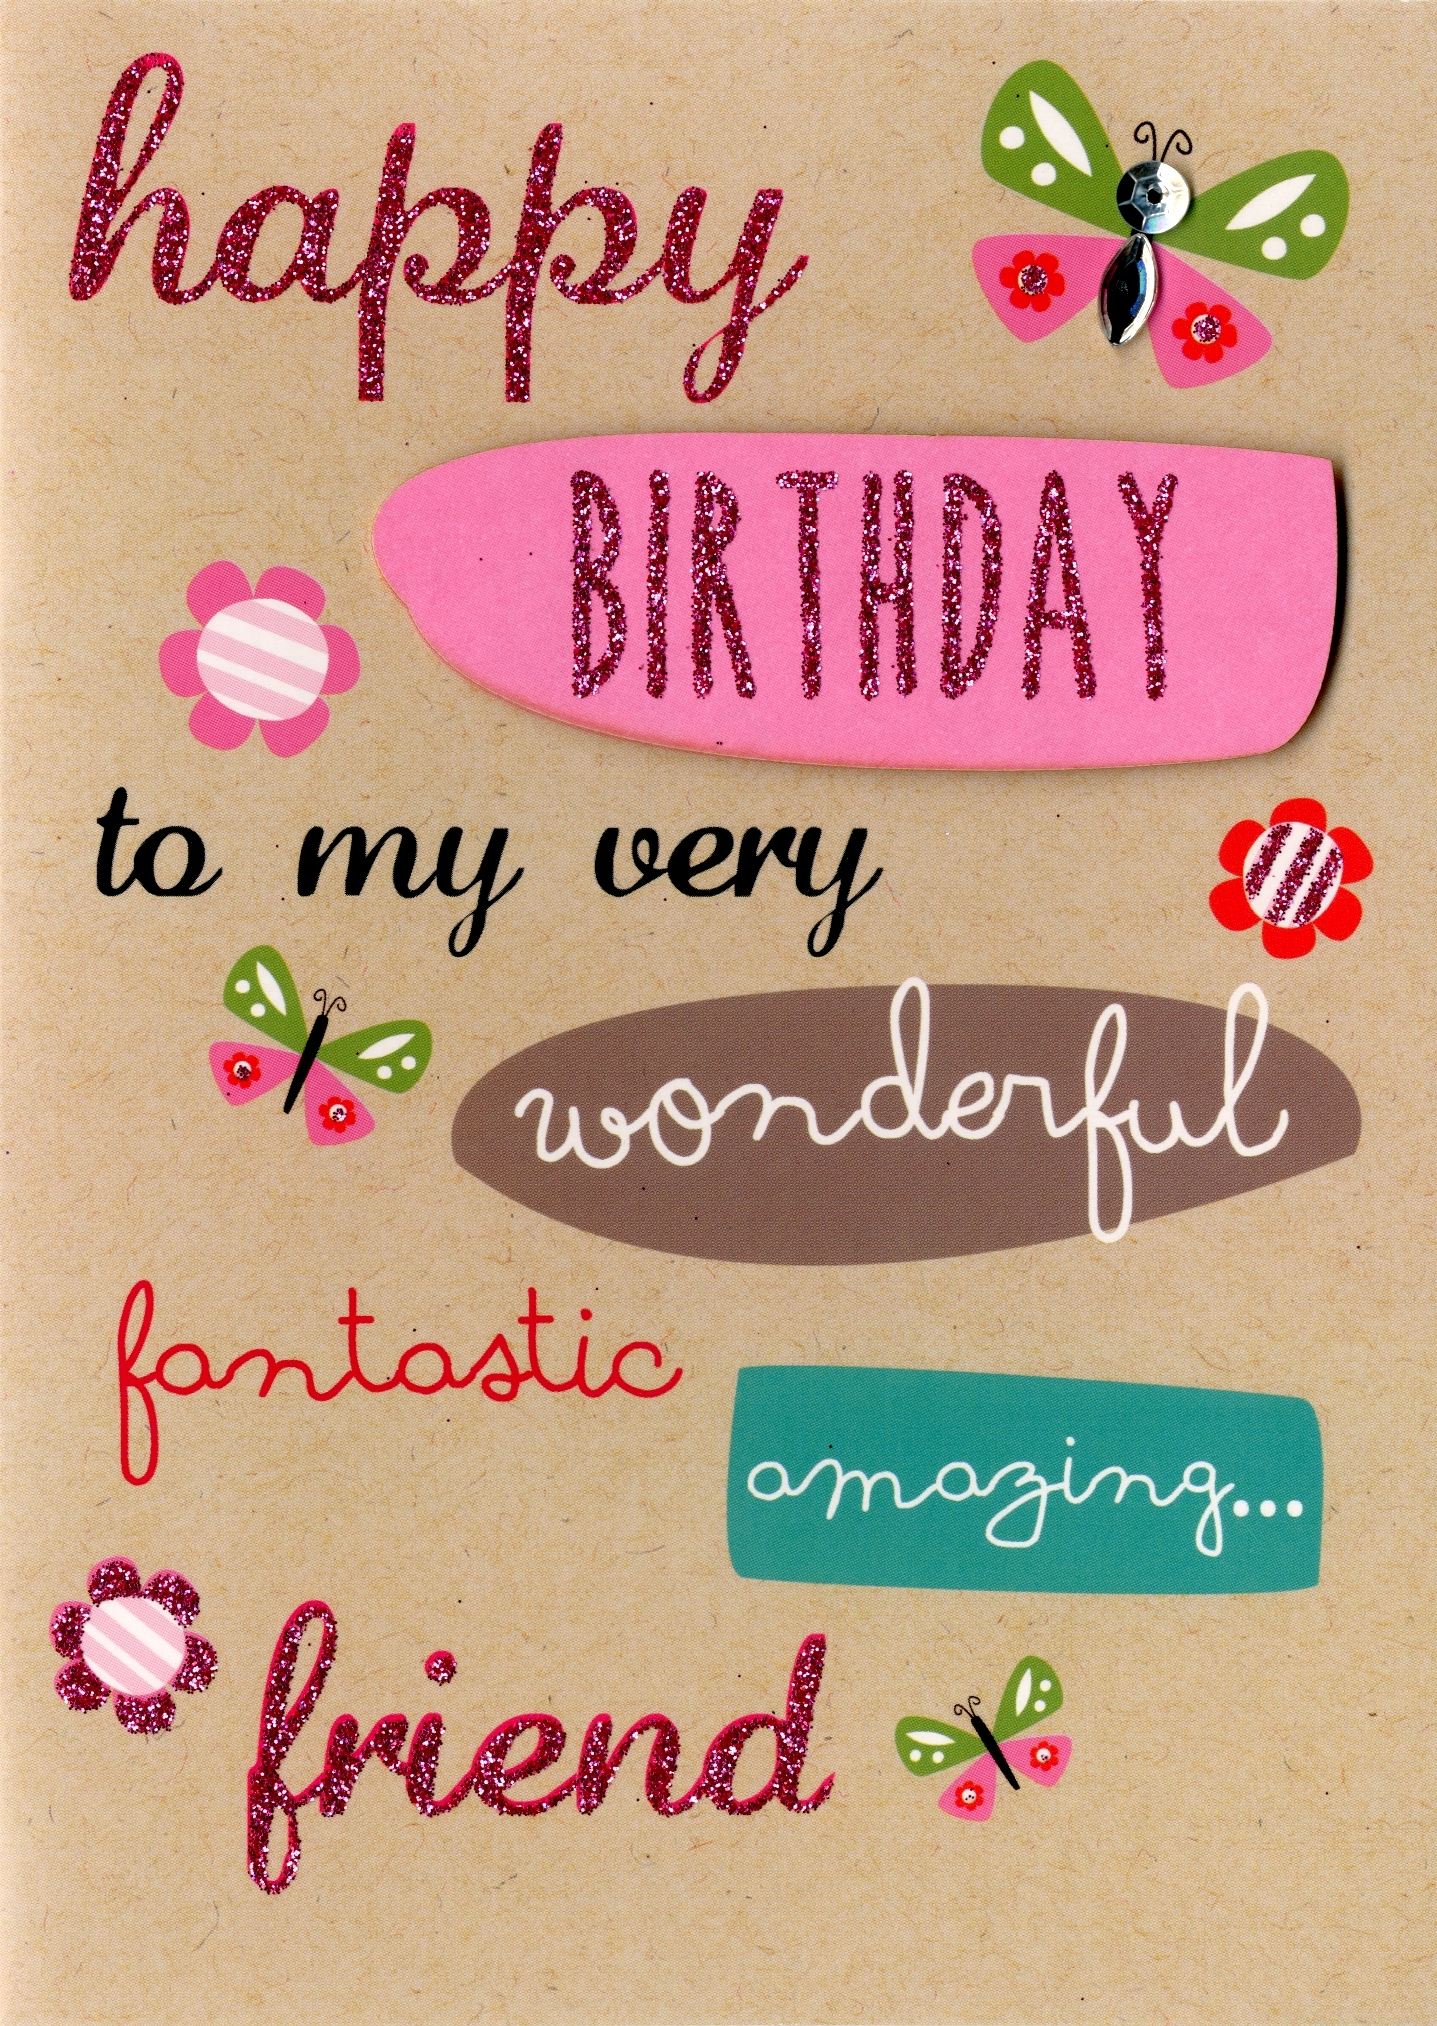 Friend birthday greeting card cards love kates friend birthday greeting card m4hsunfo